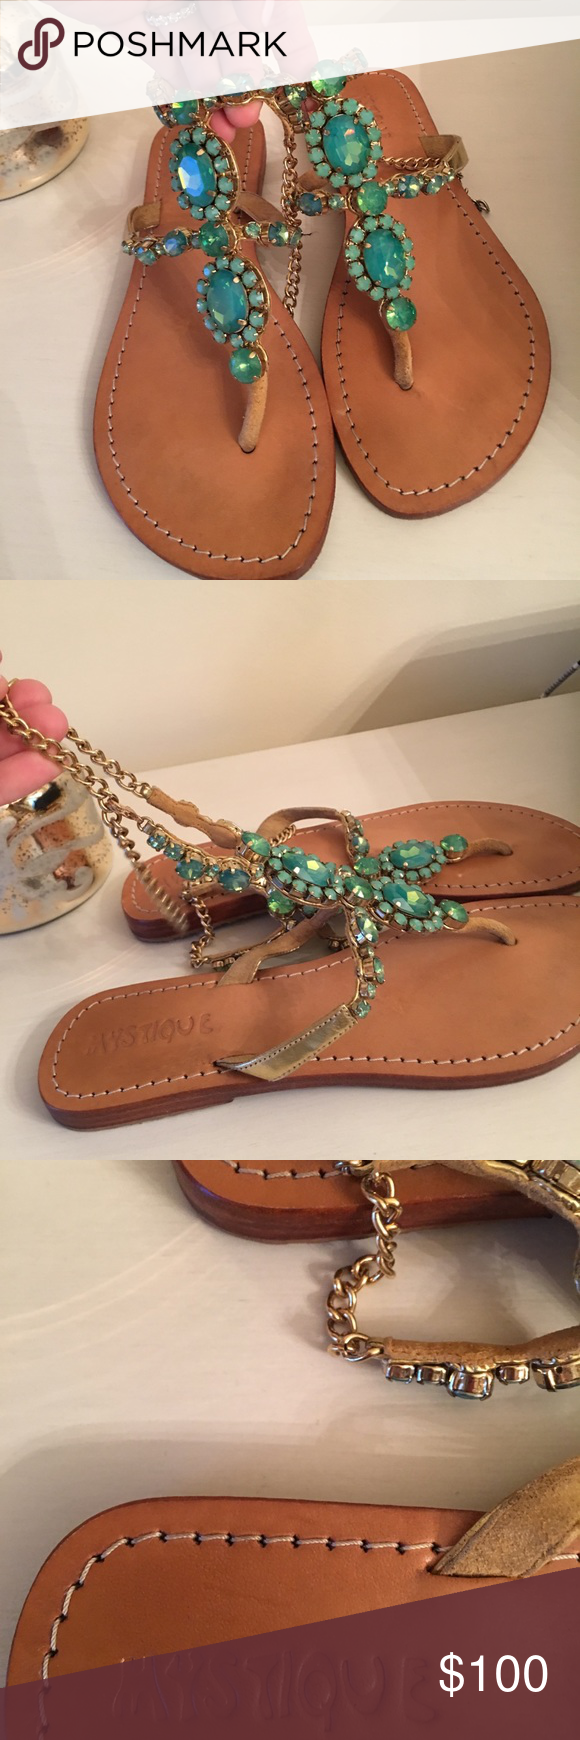 5af5258db1e3a7 The color is a turquoise teal kind of green with gold sides and chain Mystique  Boutique Shoes Sandals